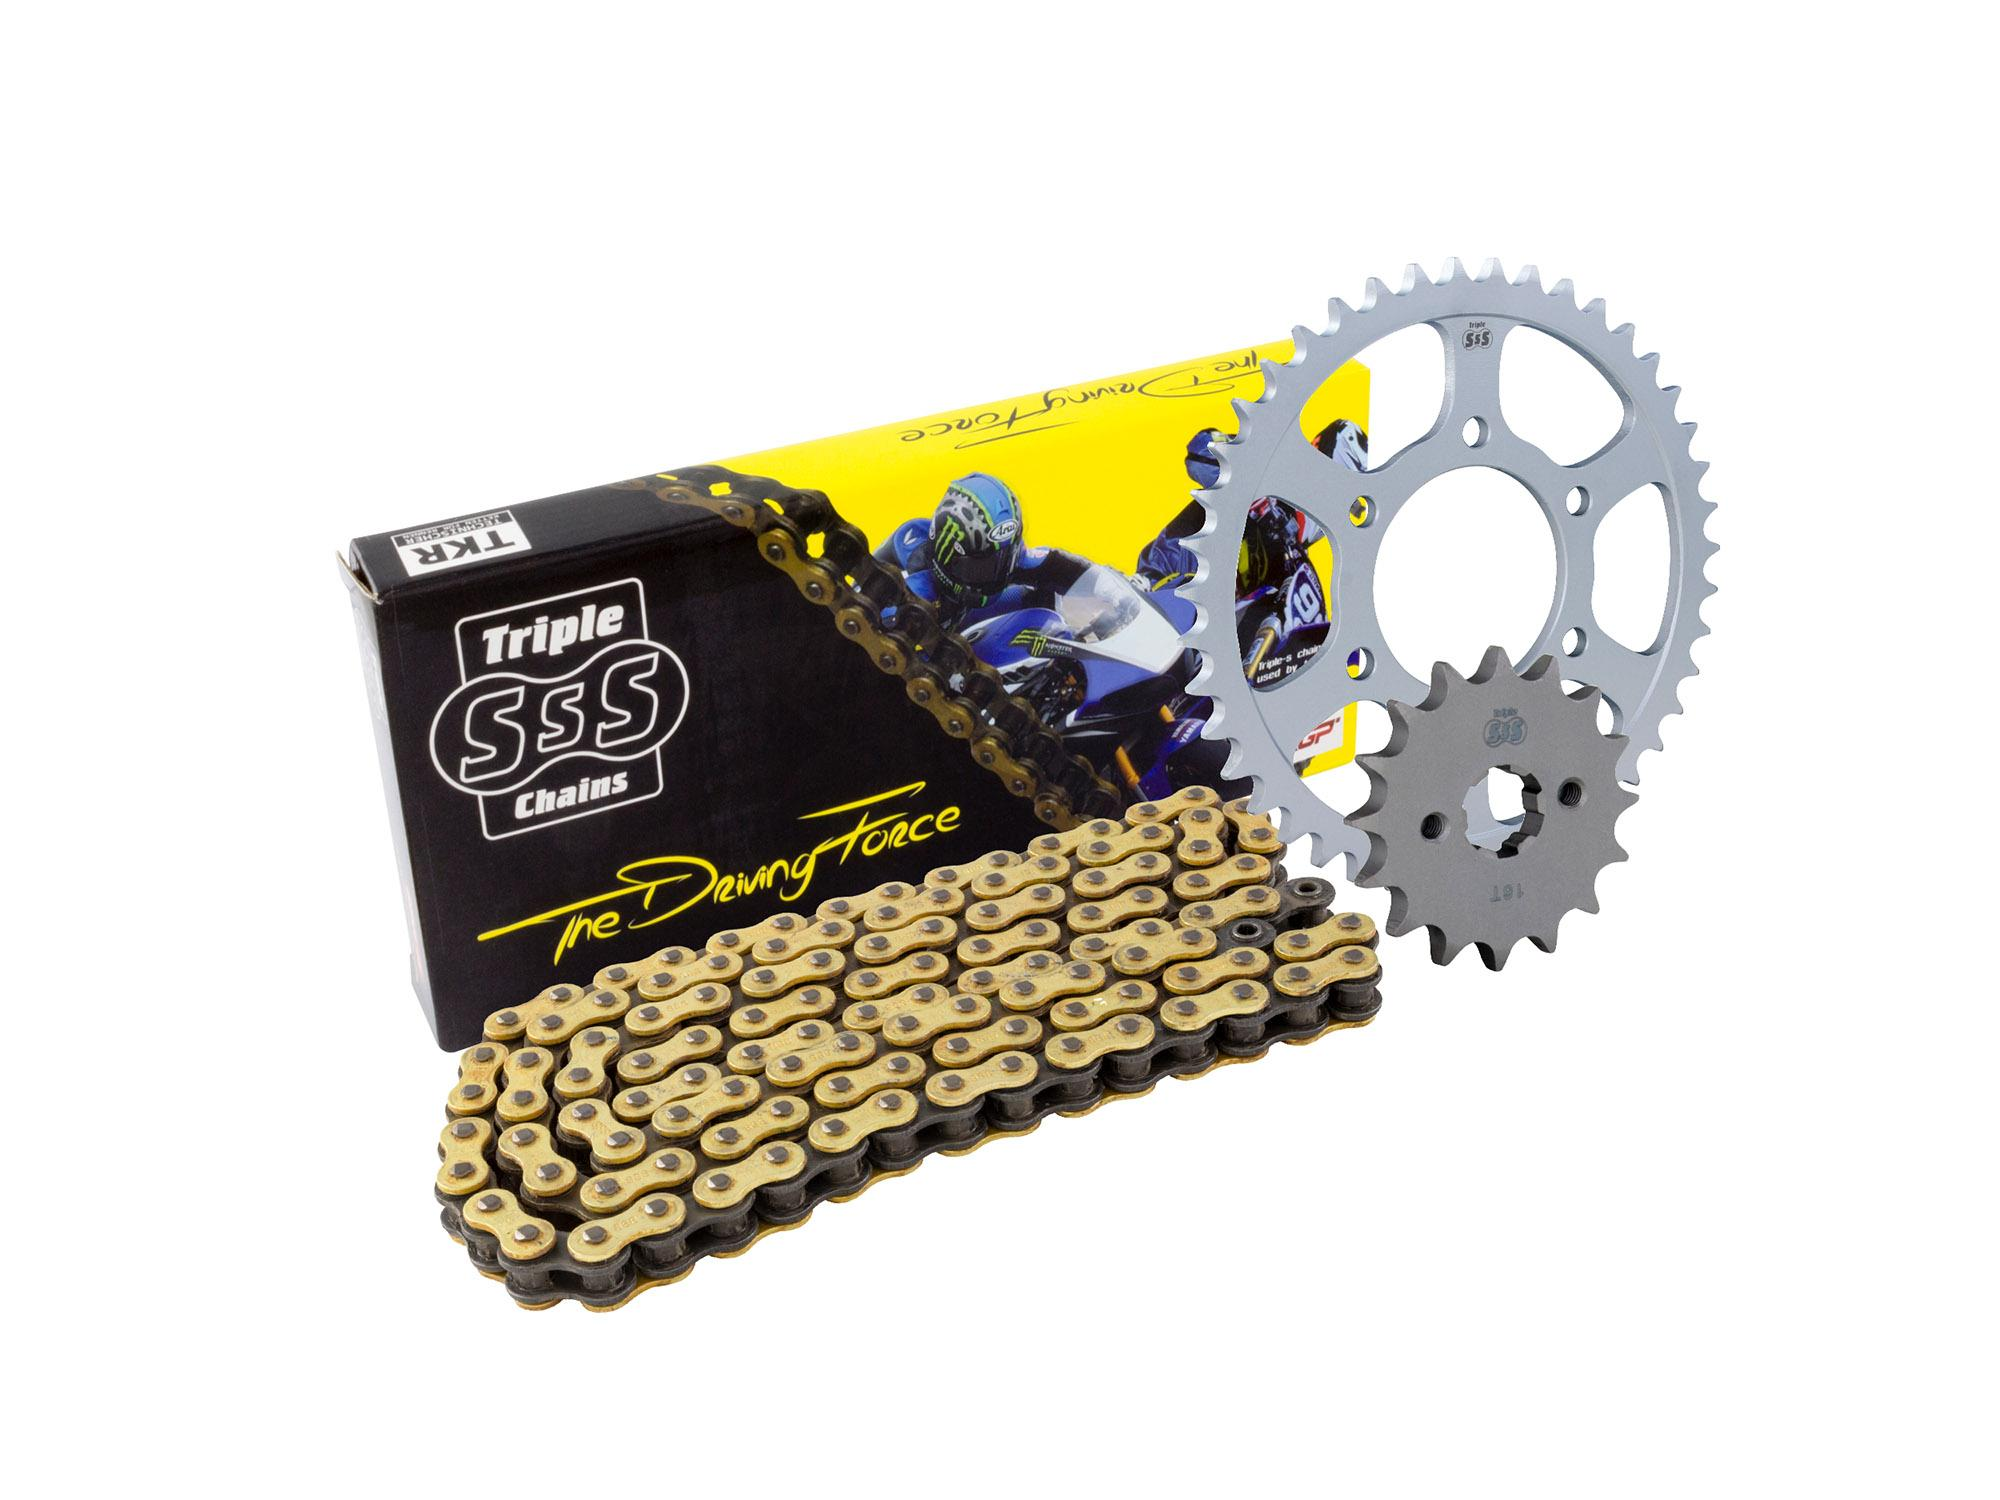 Kawasaki ZX-7RR N1-N2 Ninja 96-99 Chain & Sprocket Kit: 16T Front, 42T Rear, HD O-Ring Gold Chain 525H 108 Link